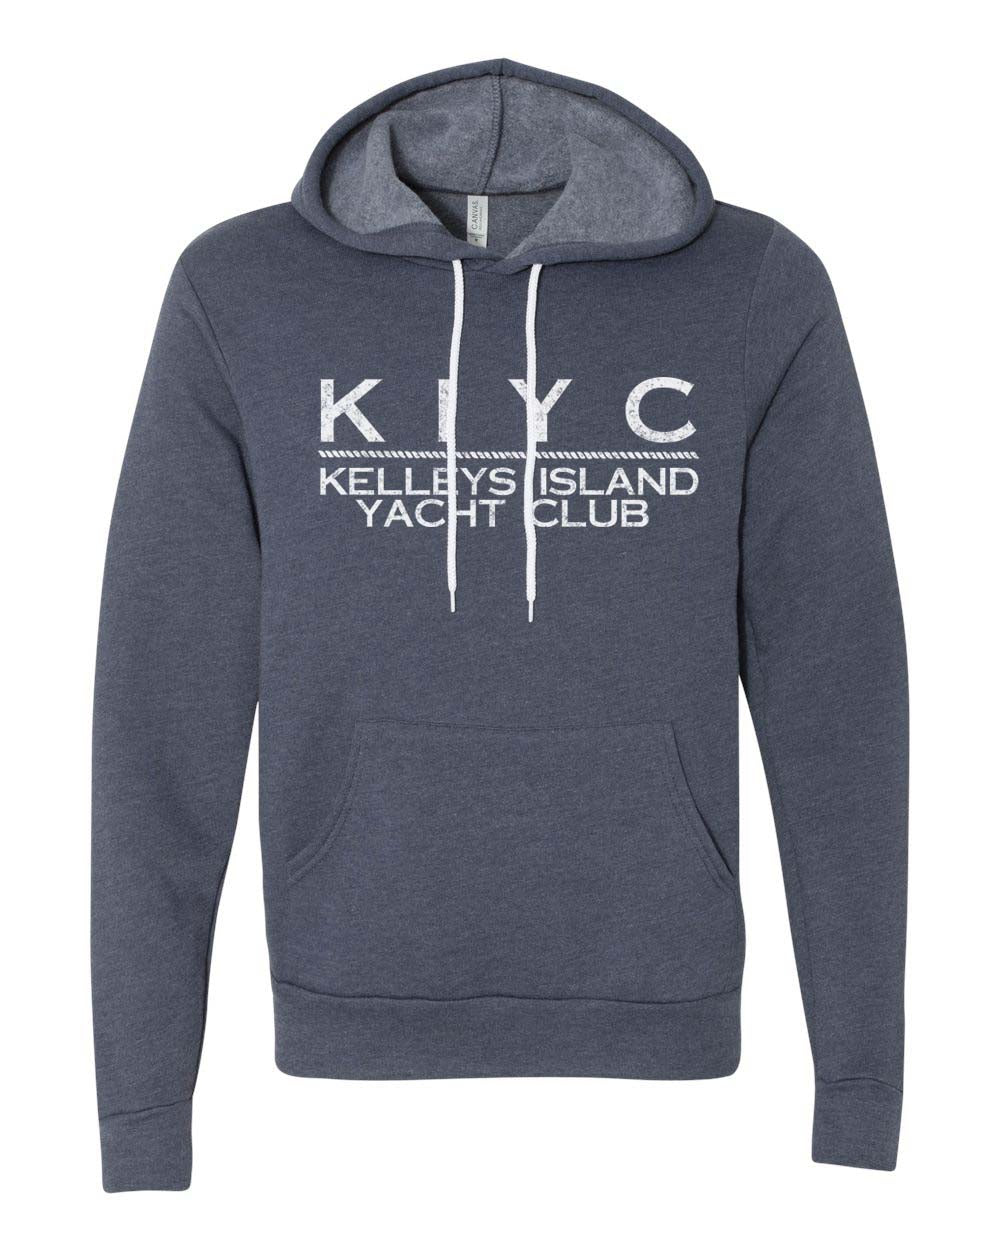 Modern KIYC Hoodie - White on Heather Navy (Unisex)